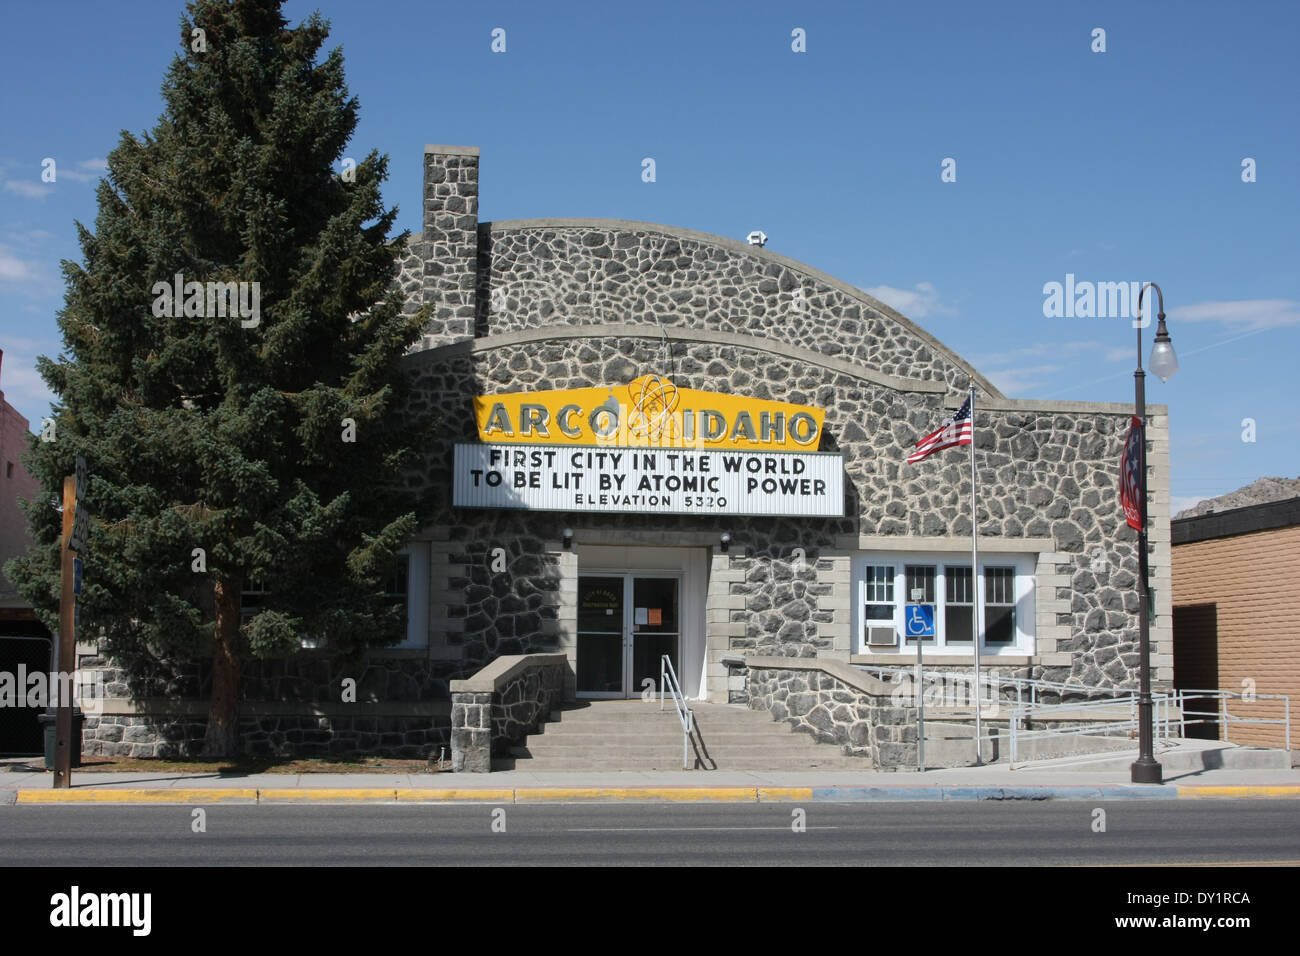 Arco, Idaho. The first city in the world to be powered by atomic power photo by Jen Lombardo - Stock Image